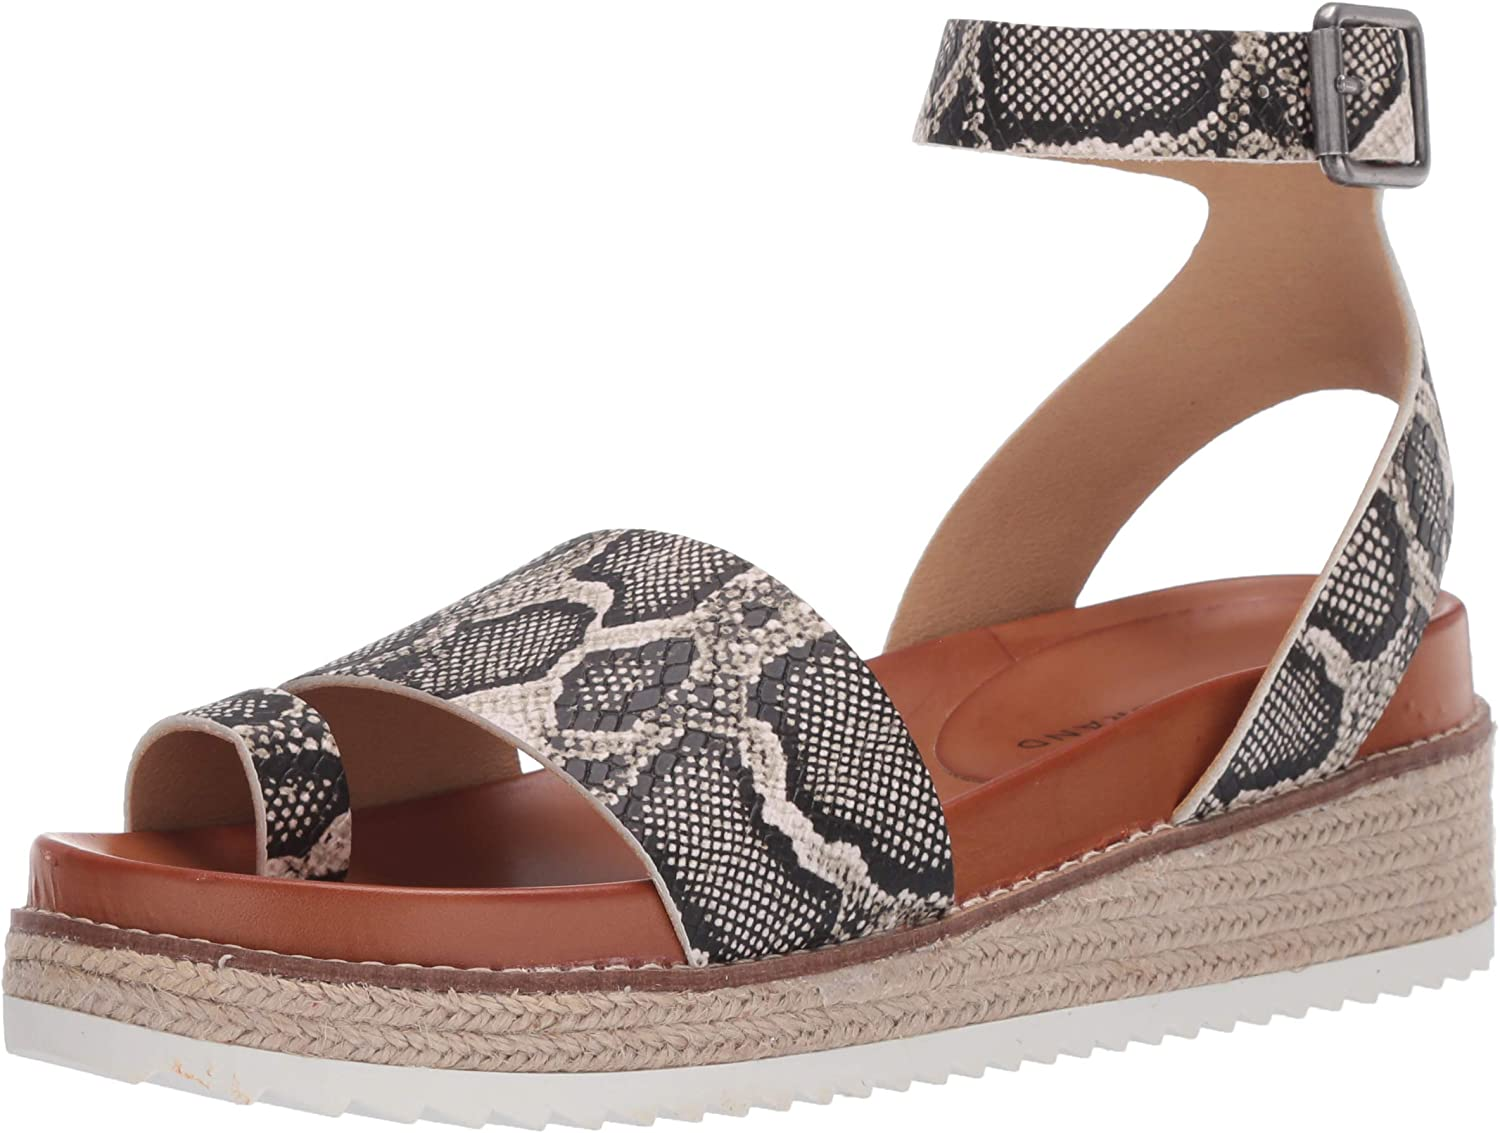 Max 80% OFF Lucky Brand Women's Itolva Sandal Sales for sale